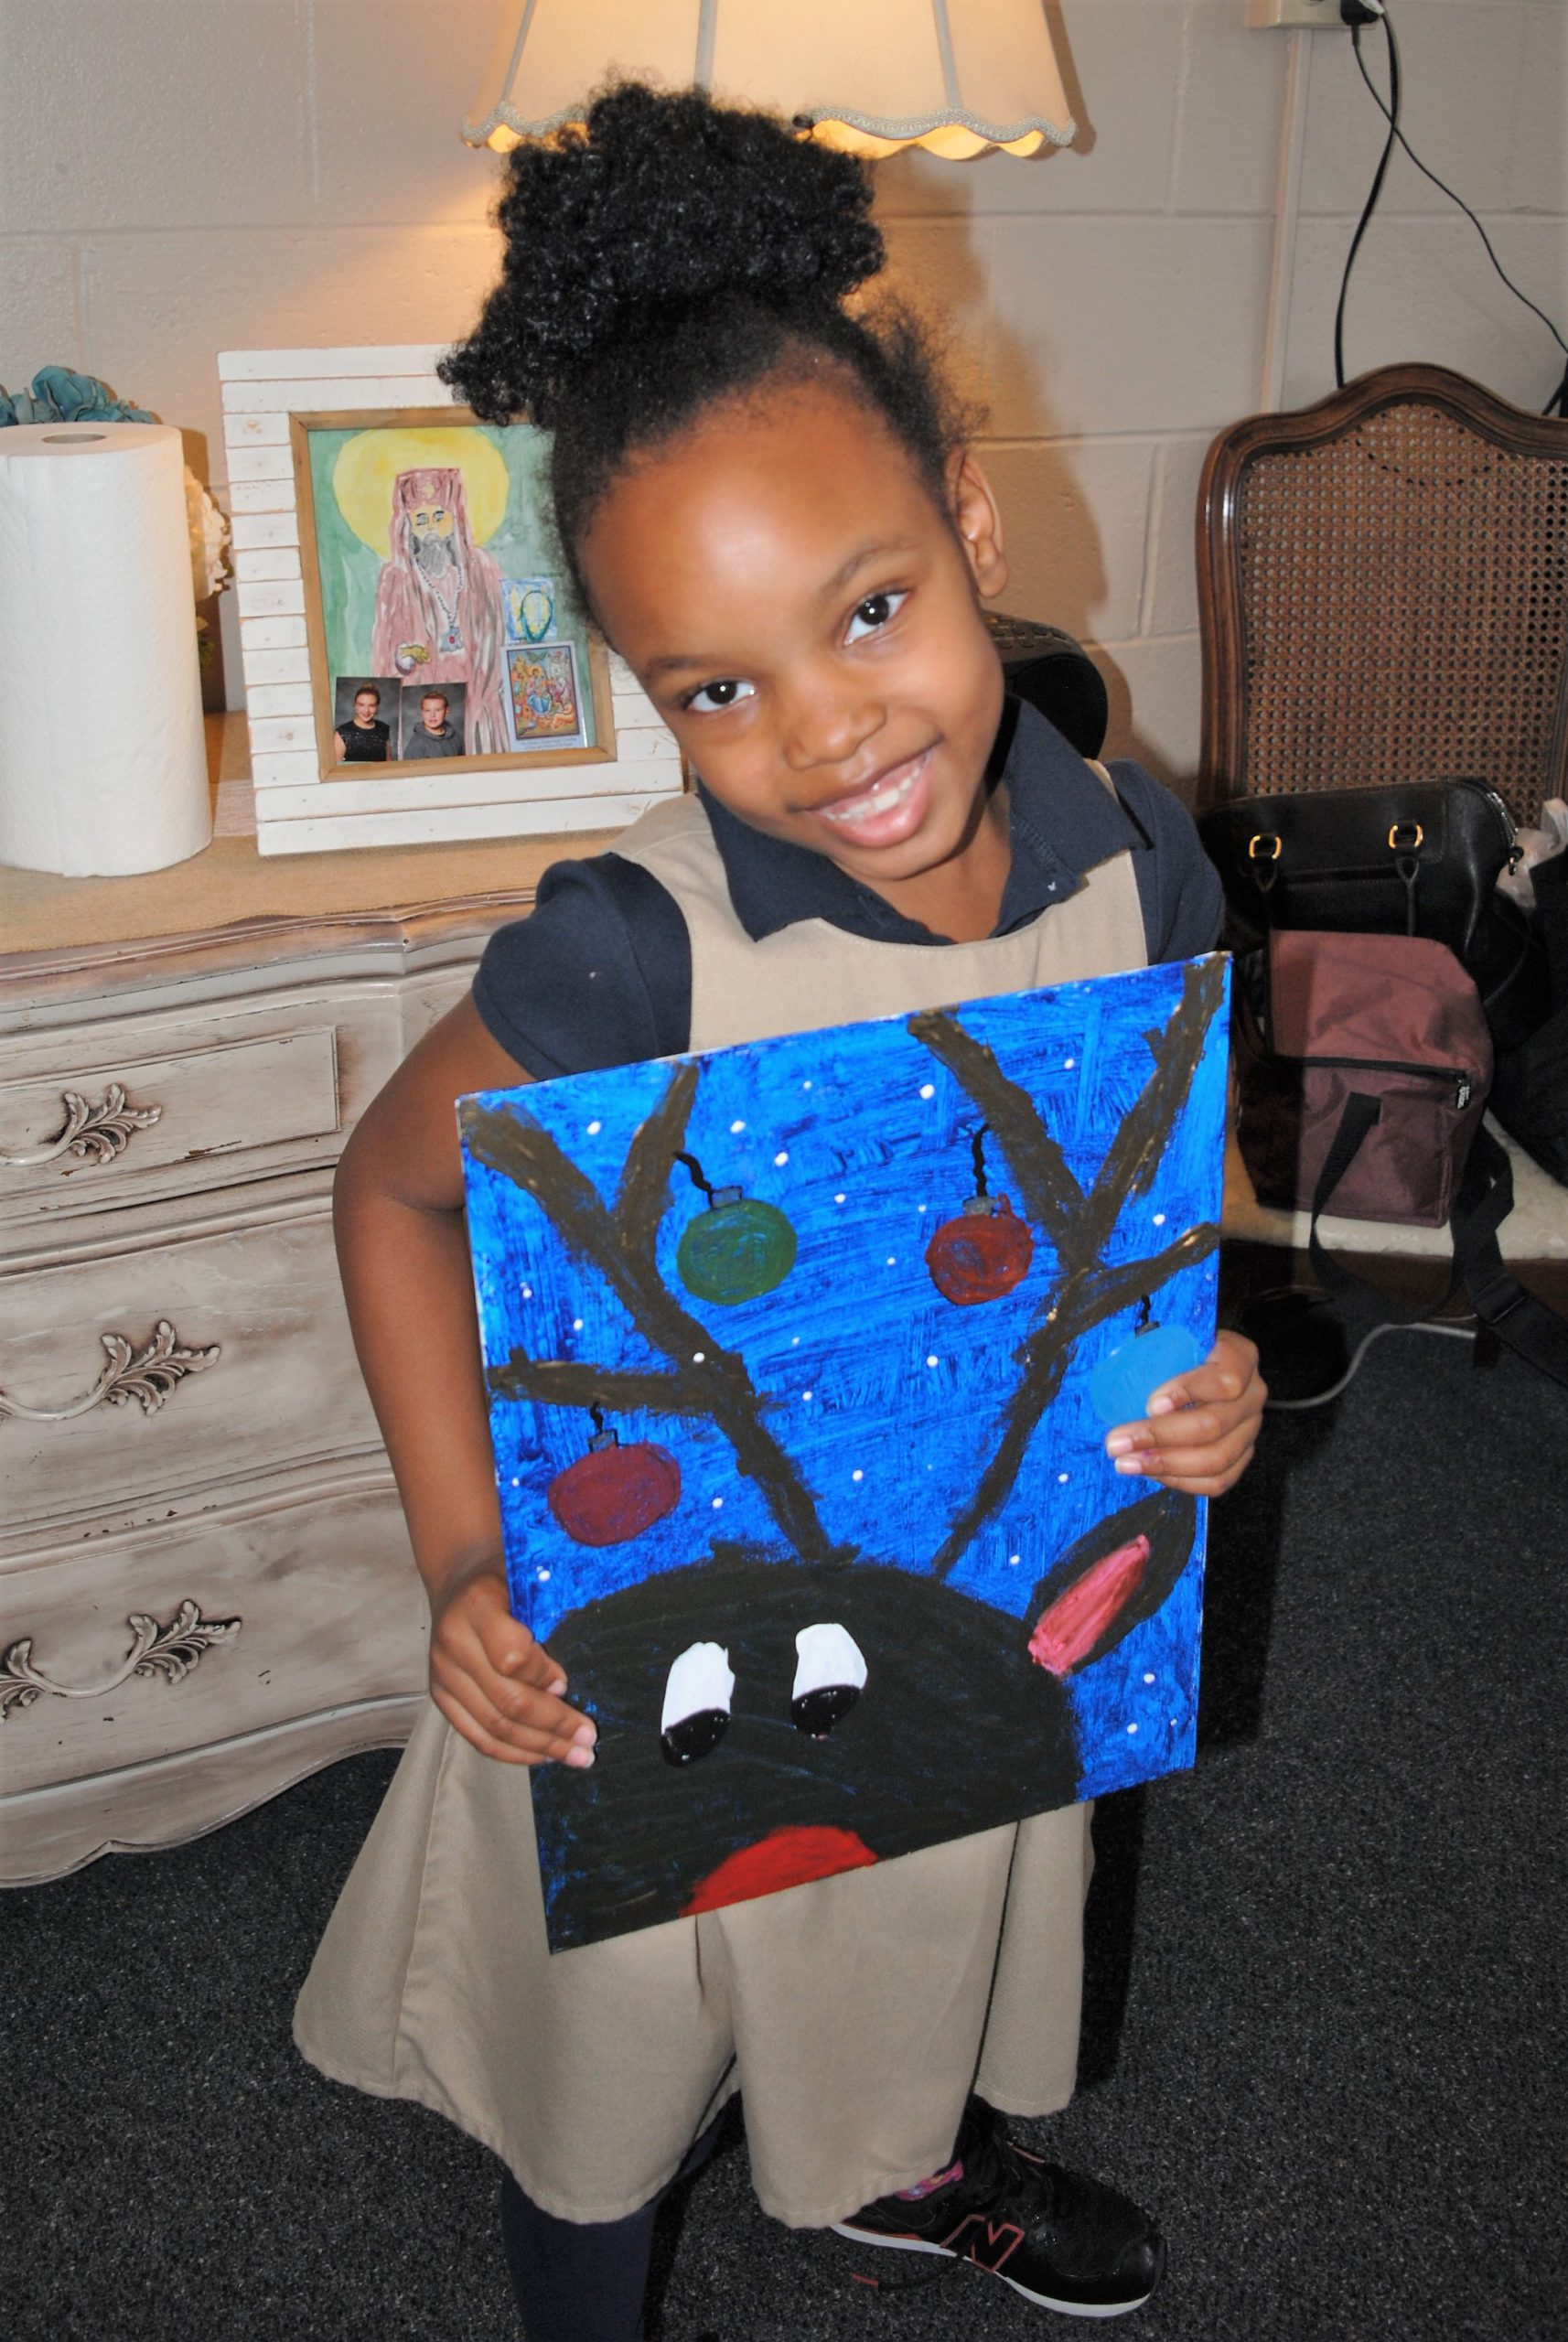 Student holds her hand-painted reindeer picture